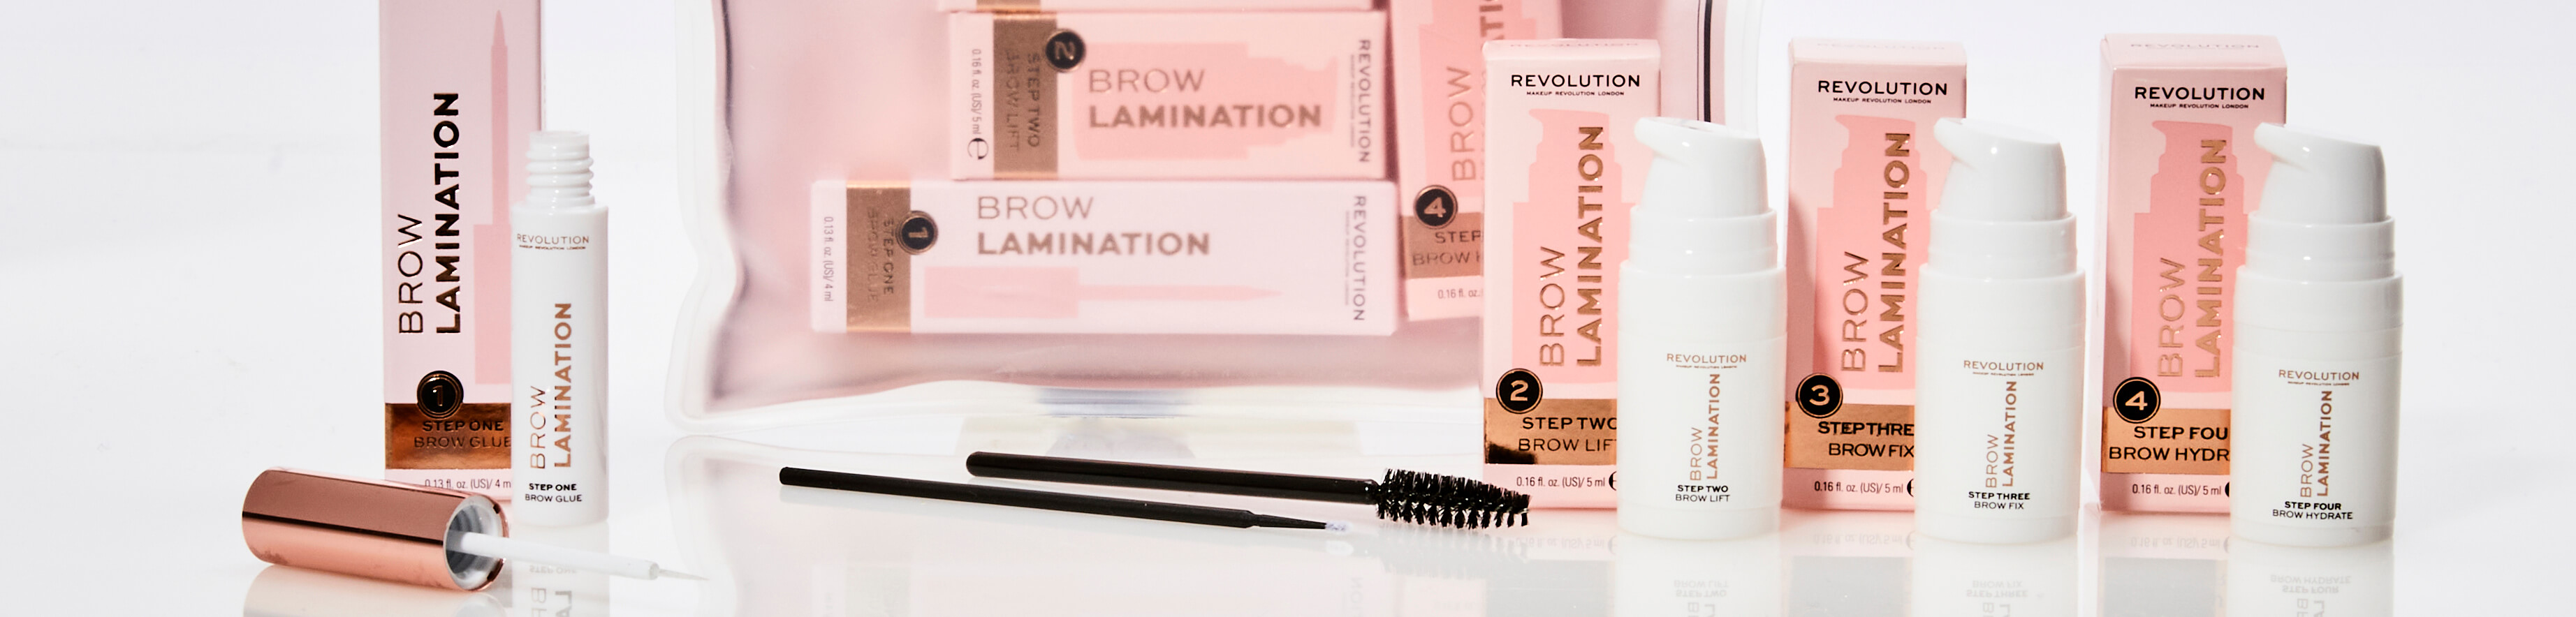 How to Laminate Brows at Home